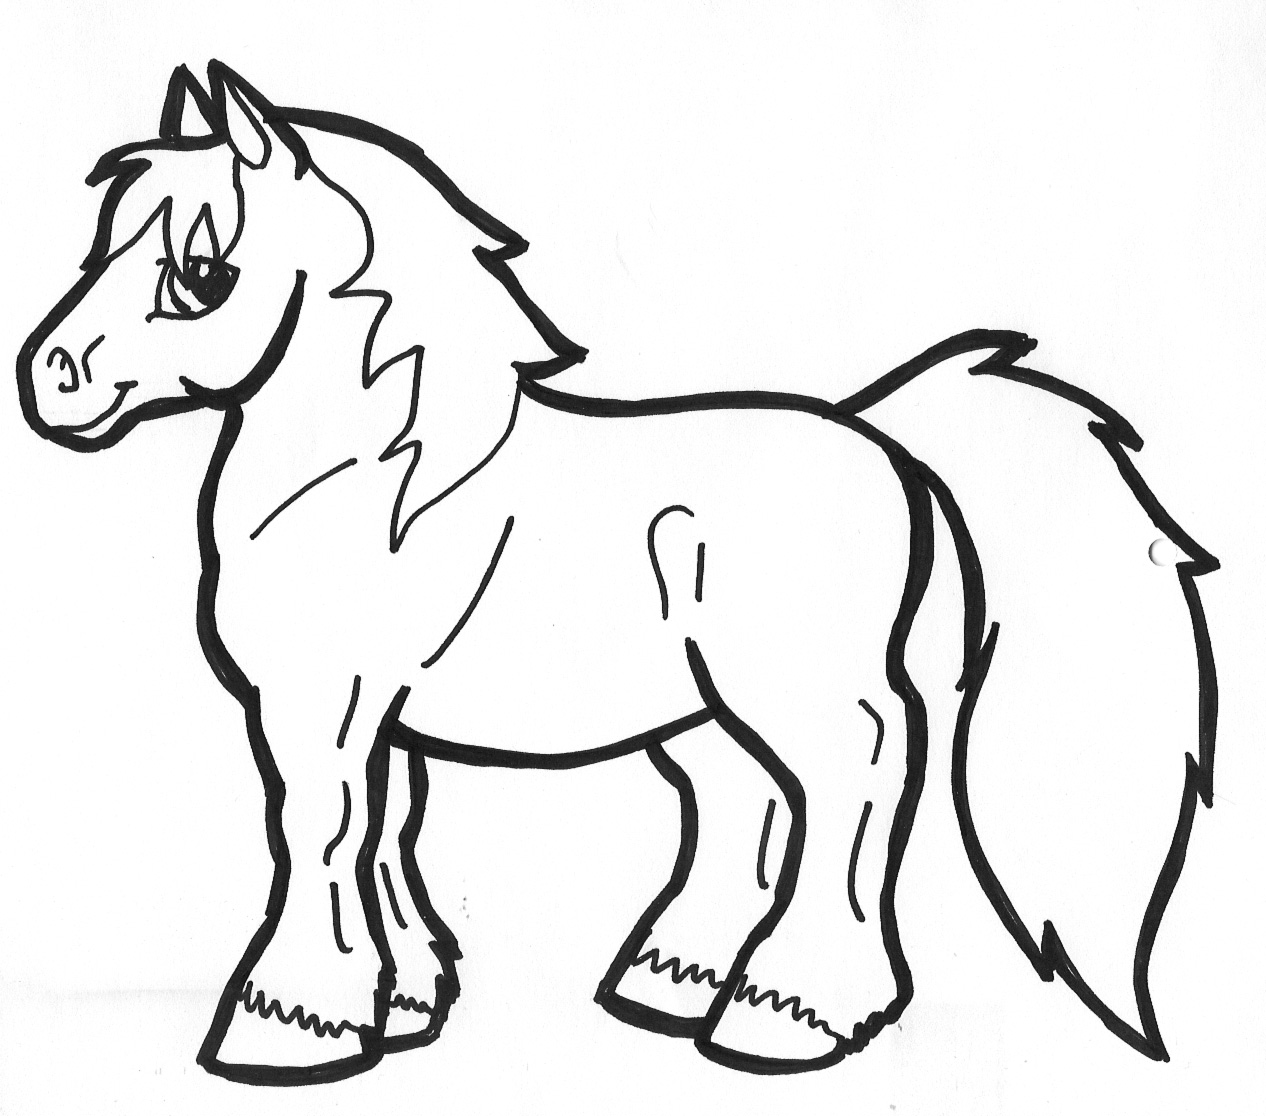 Pony clipart black and white 7 » Clipart Station.